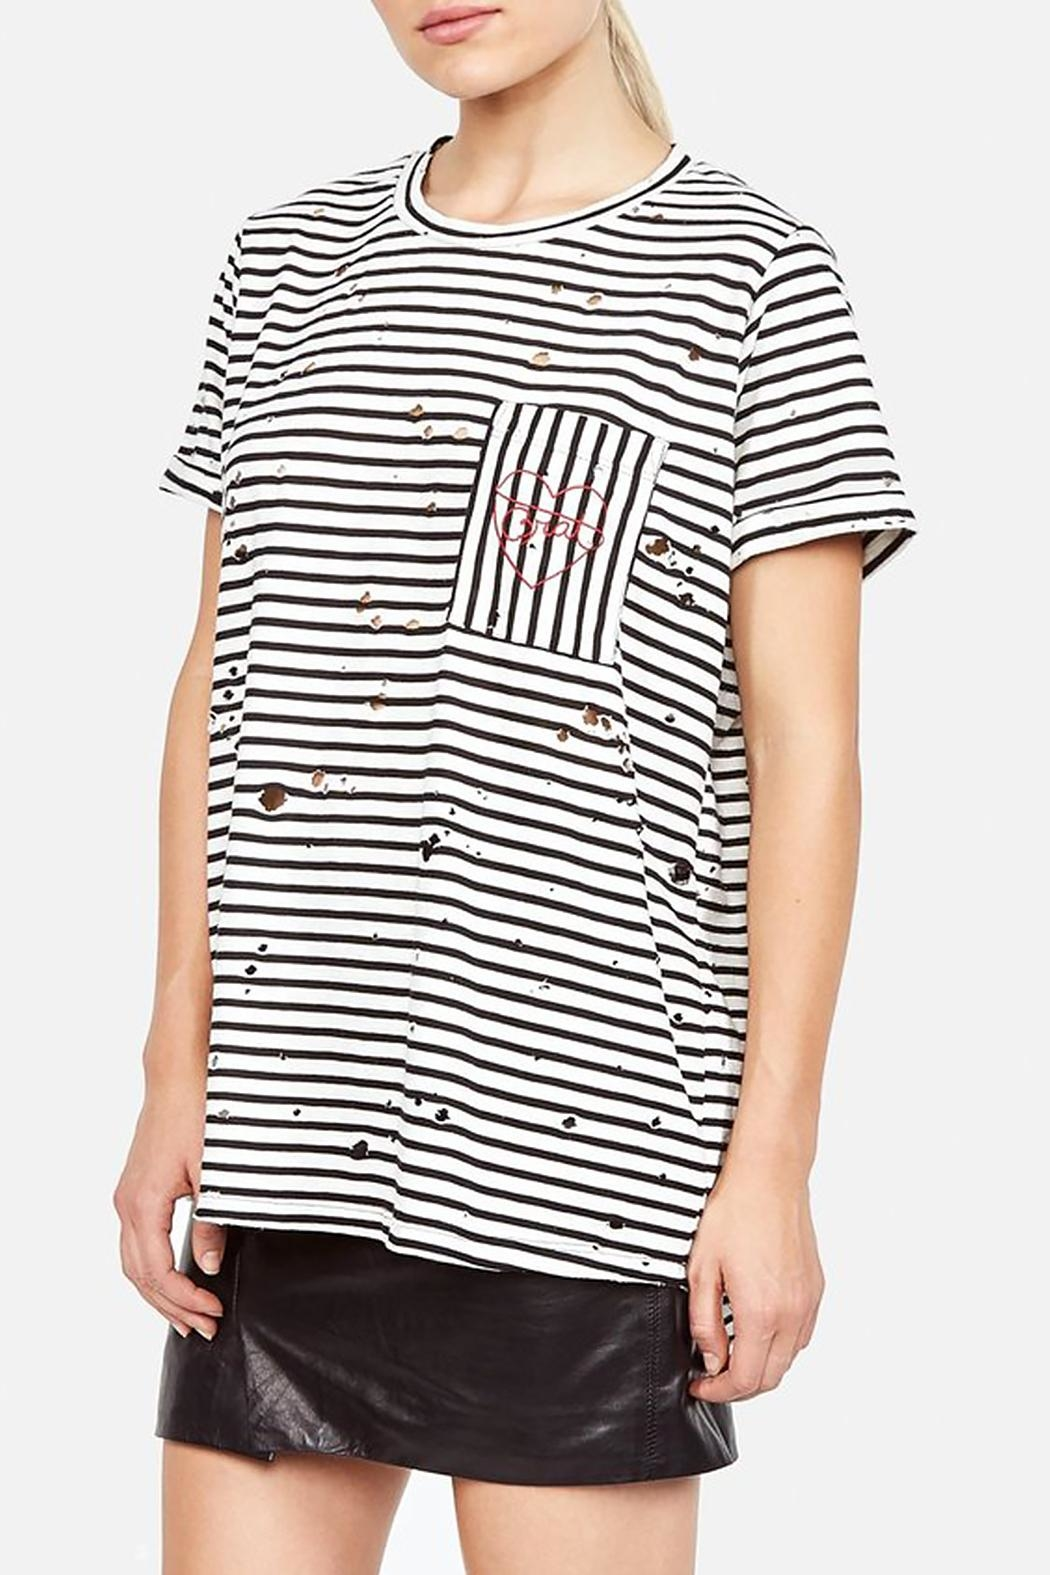 Lauren Moshi Love Distressed Tee - Back Cropped Image